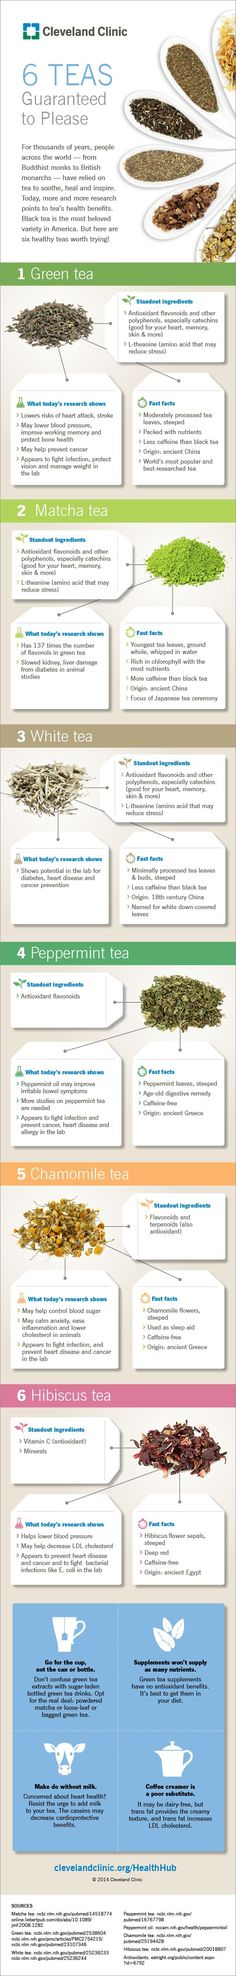 It's National Hot Tea Month. You can't go wrong with these 6 types of tea, which come recommended and explained by the Cleveland Clinic.